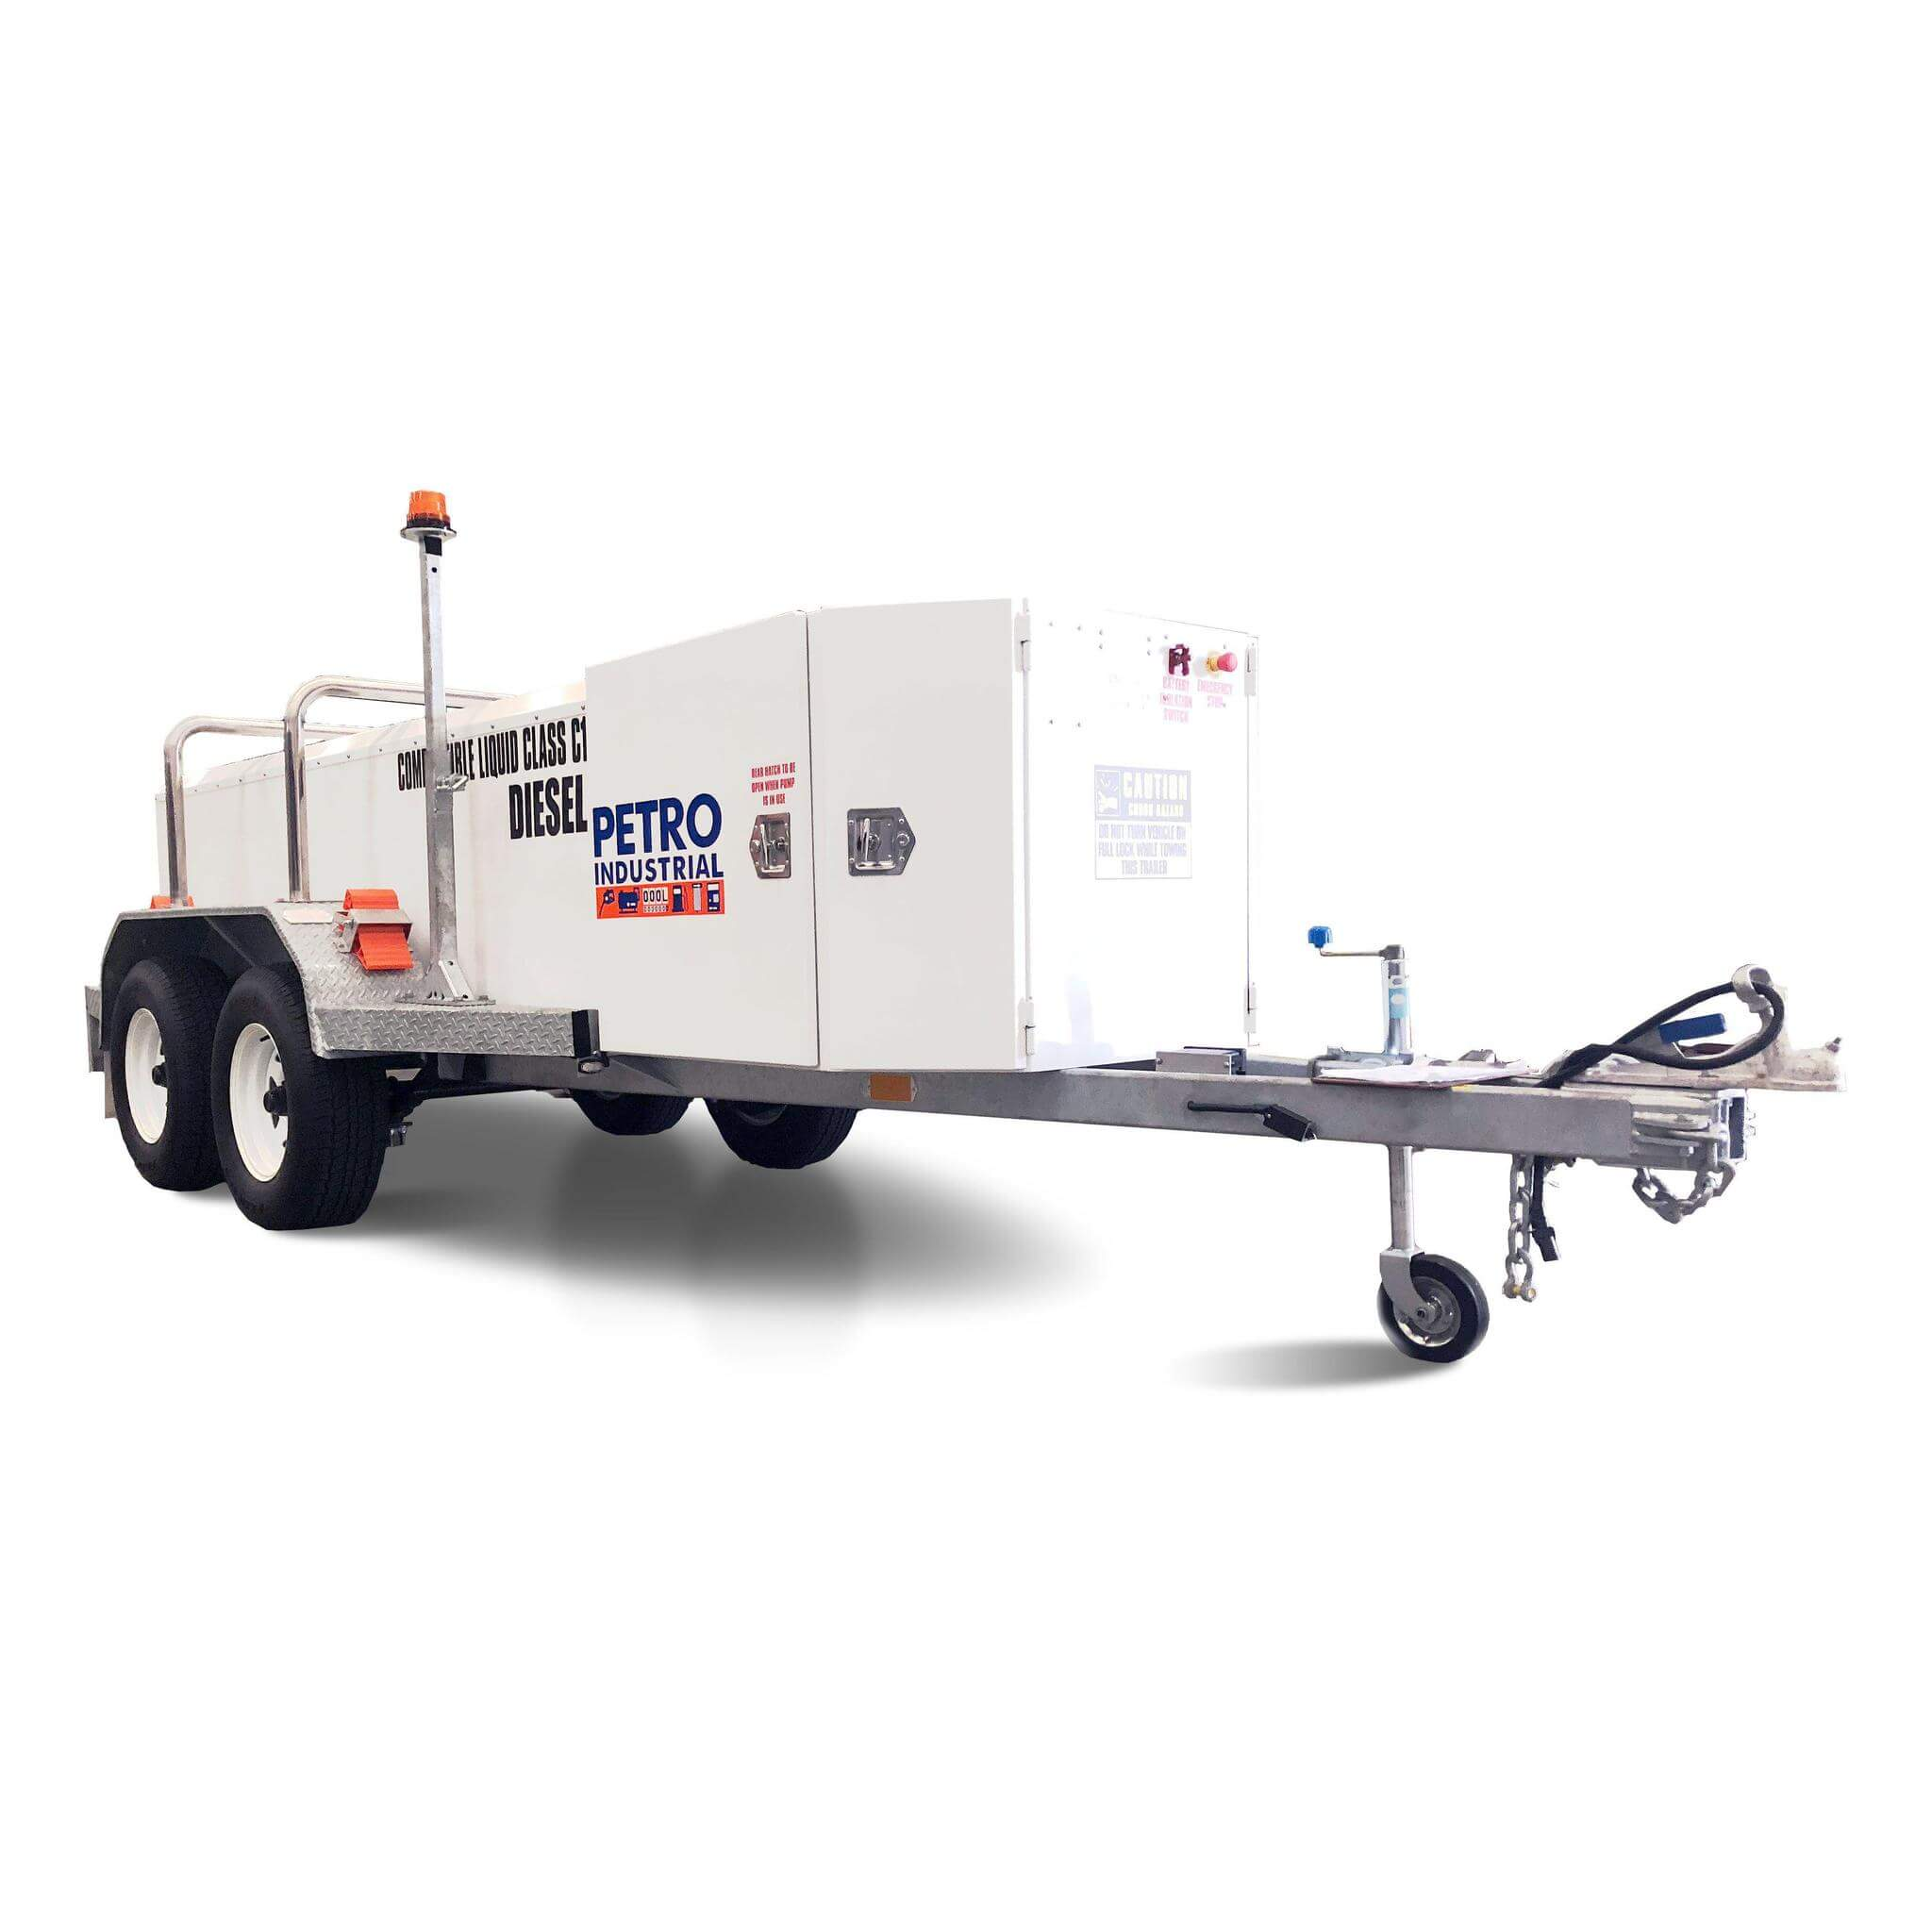 TRAILER PETRO Self Bunded Low Profile Galvanised Dual Axle – TRAILER-LP-1250